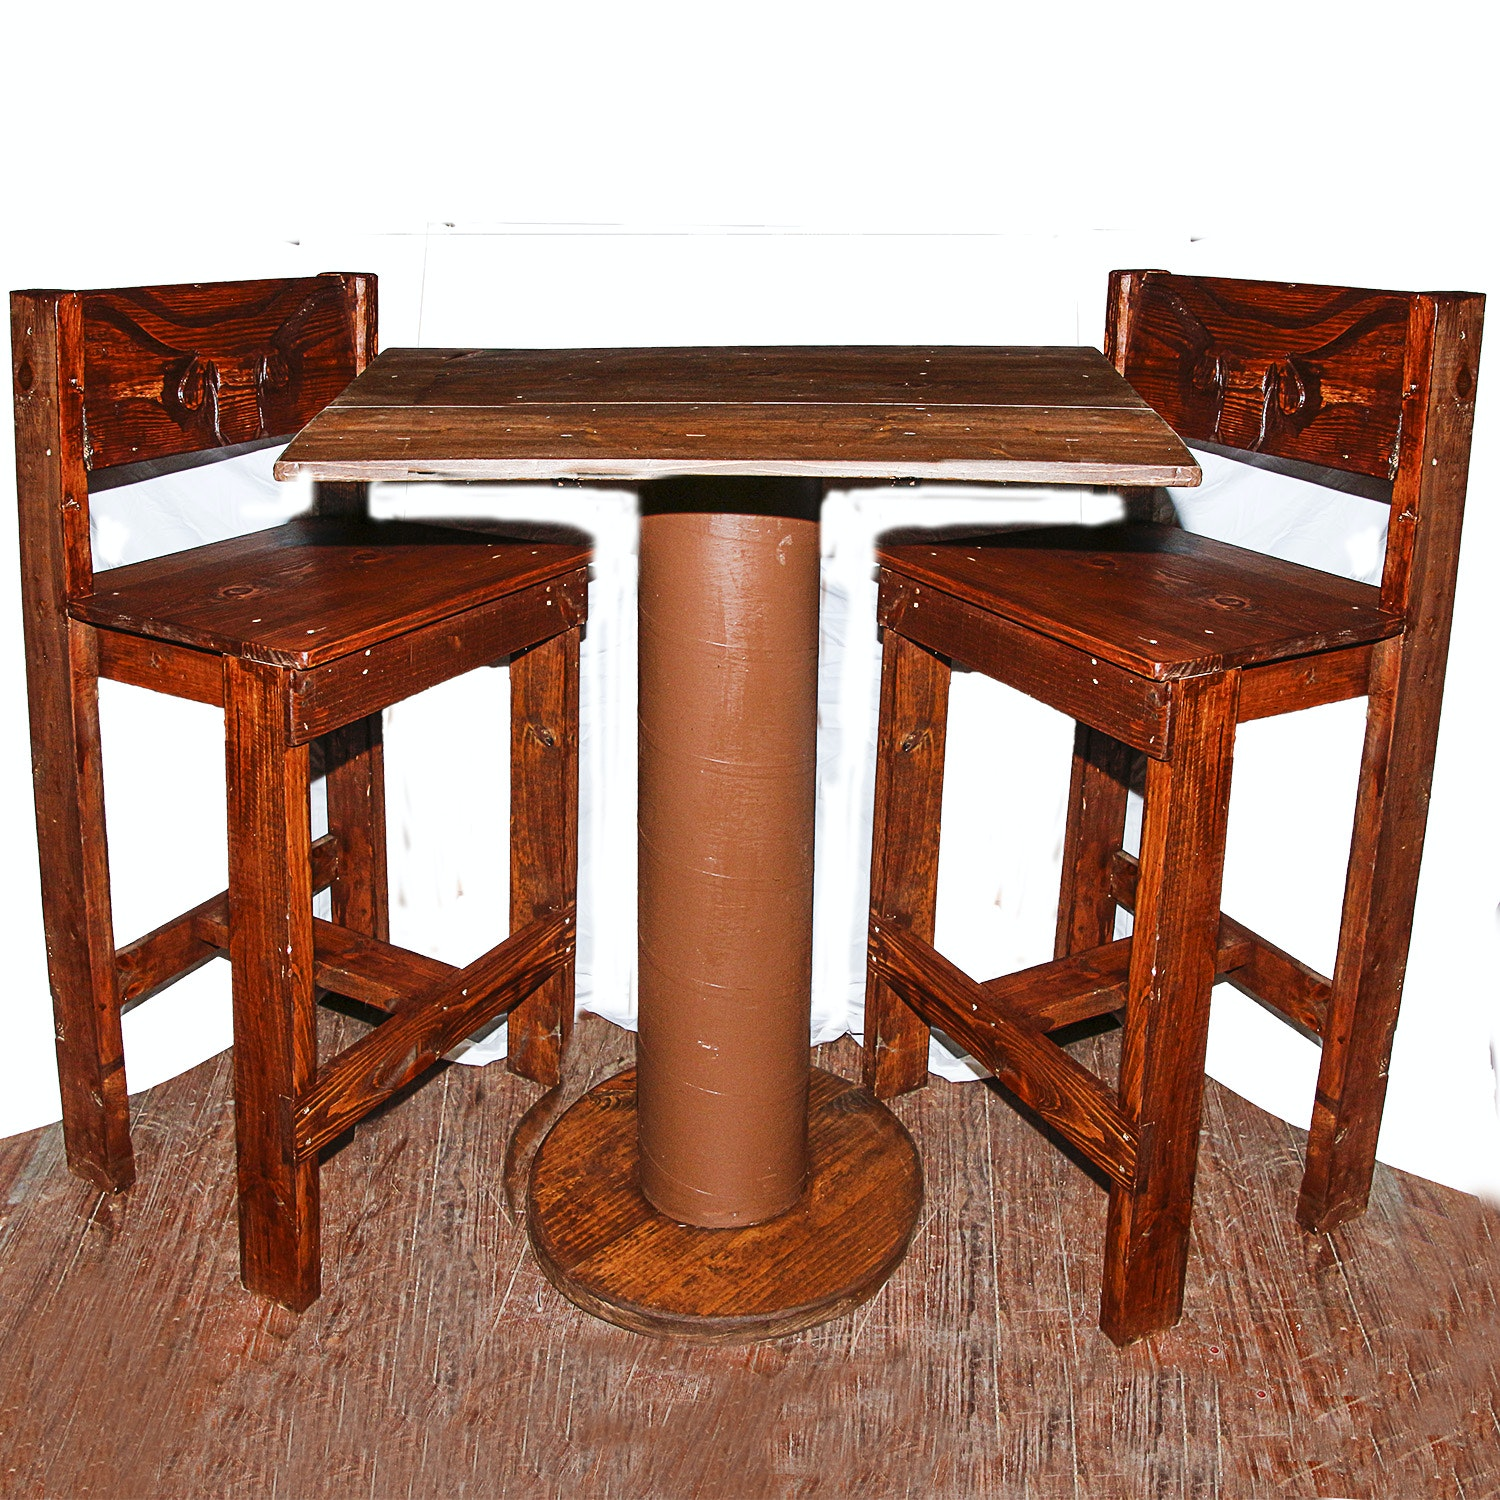 Rustic Wooden High Top Table with Chairs